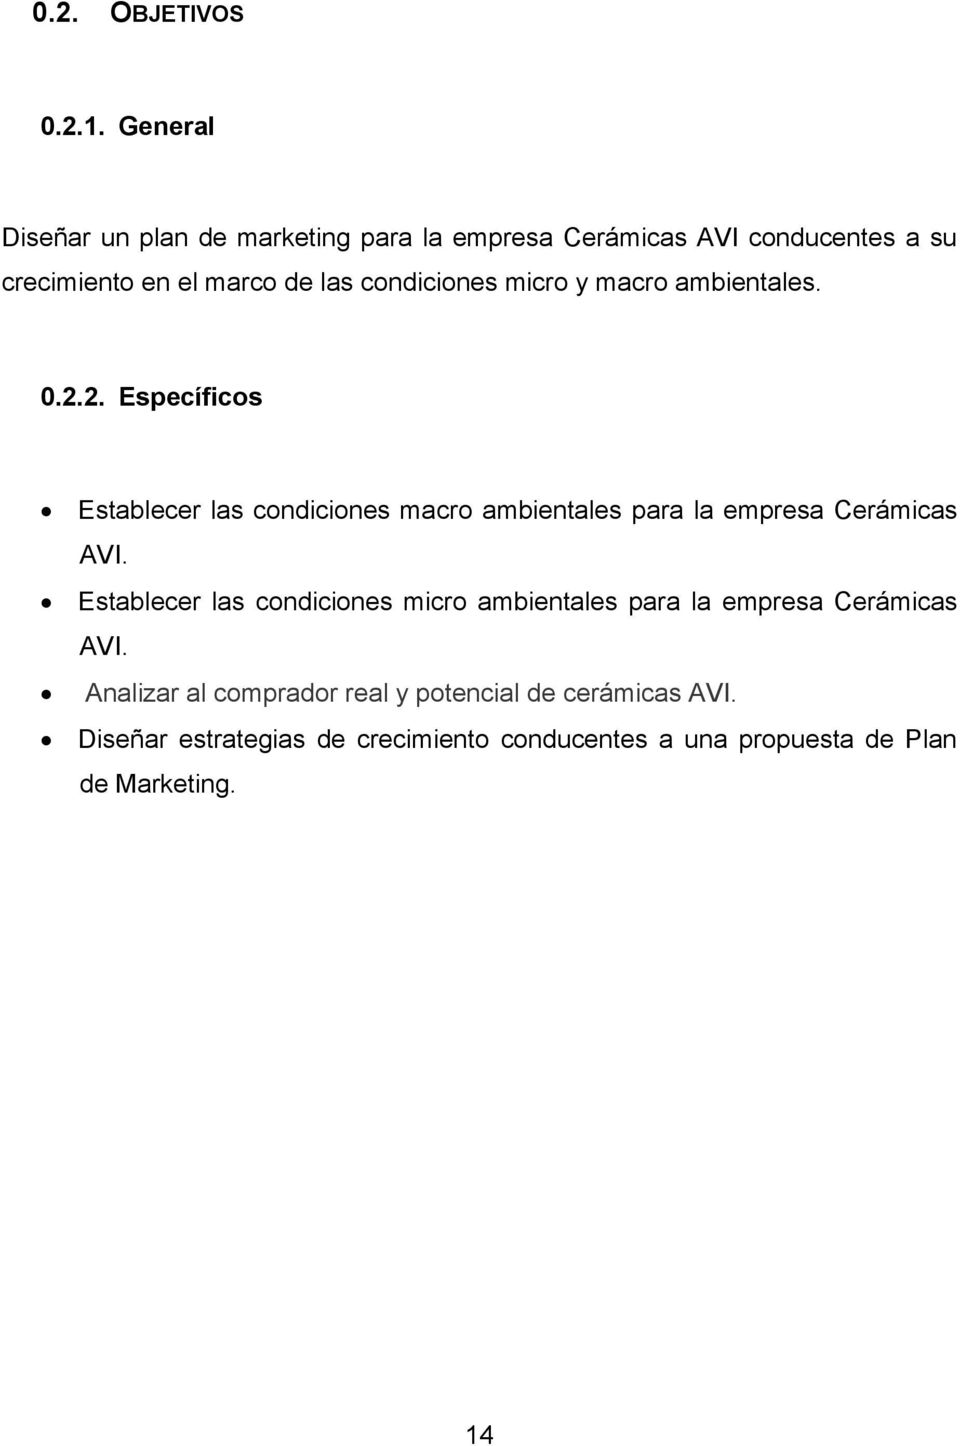 PLAN DE MARKETING PARA LA EMPRESA CERÁMICAS AVI AÑO PDF